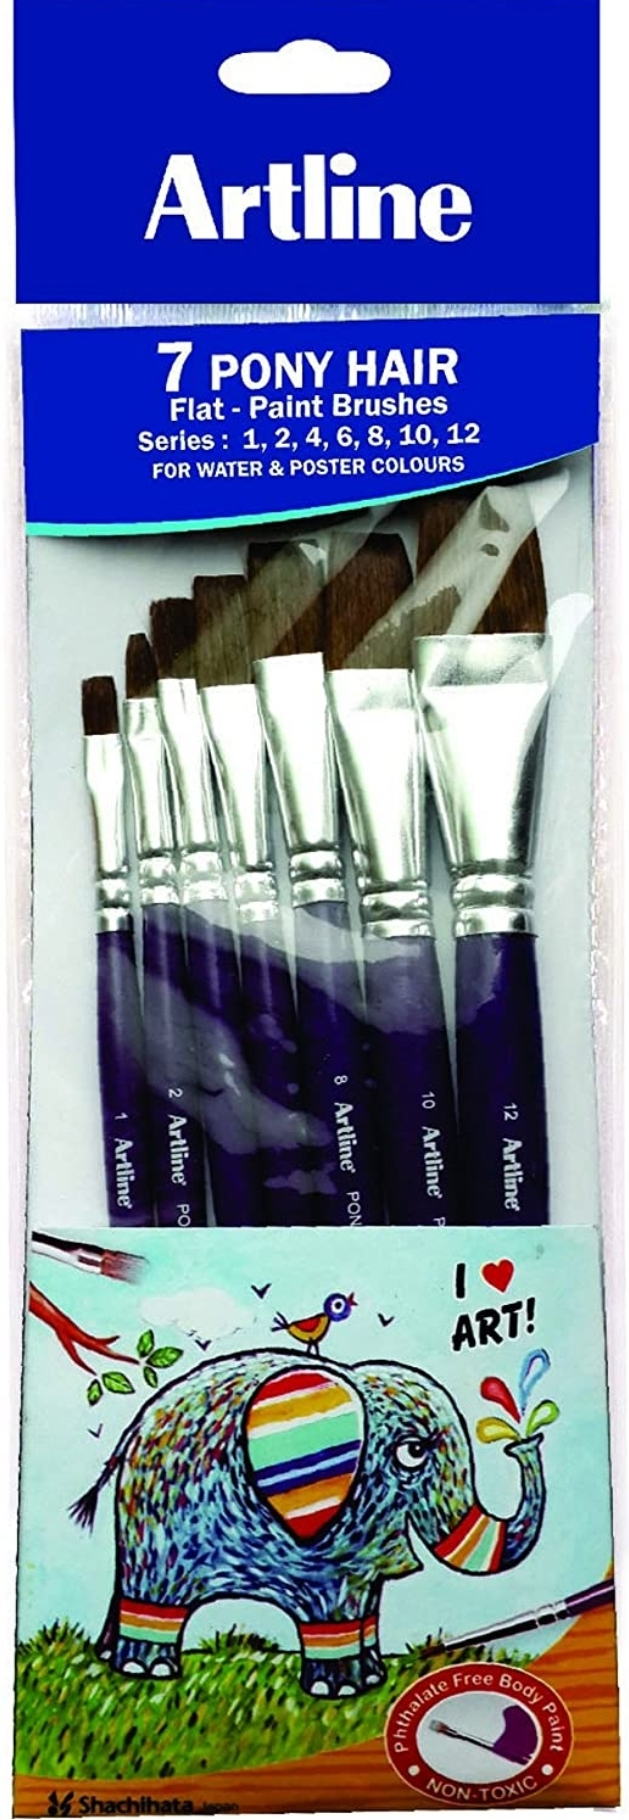 Artline 7 Flat Pony Hair Paint Brushes Set (Size 1,2,4,6,8,10,12) For Water & Poster Colours